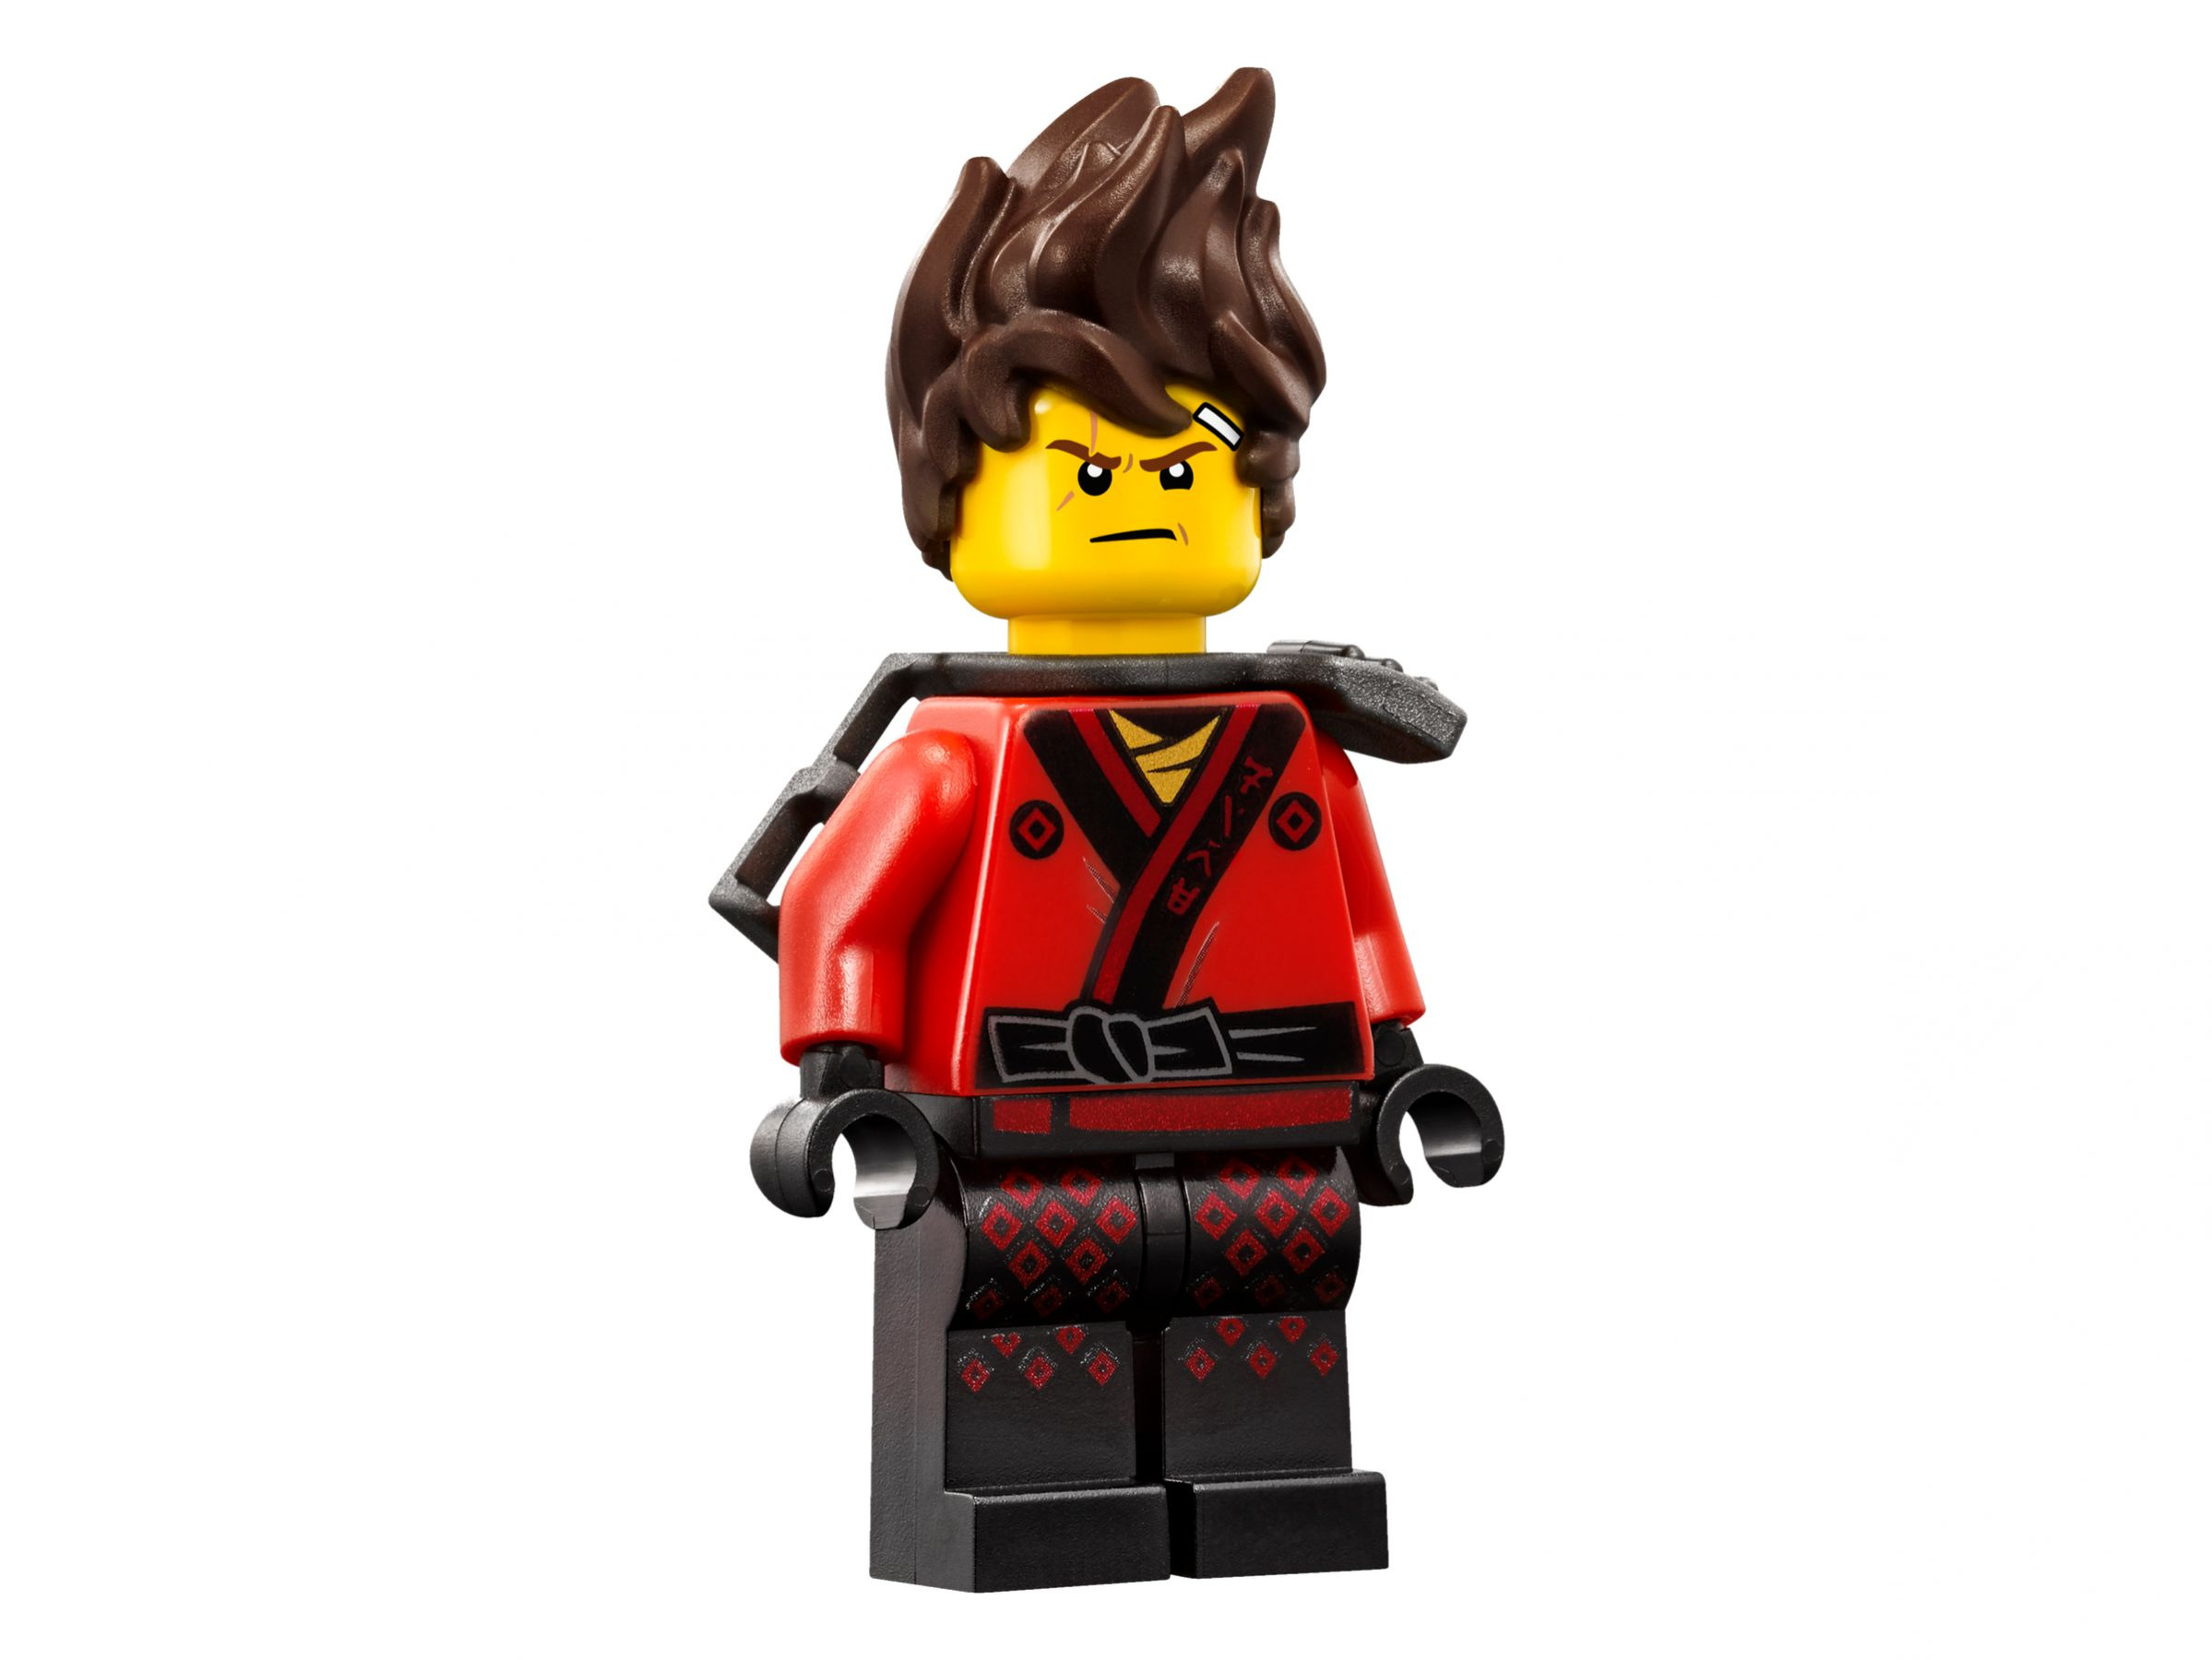 LEGO The LEGO Ninjago Movie 70617 Ultimativ ultimatives Tempel-Versteck LEGO_70617_alt11.jpg